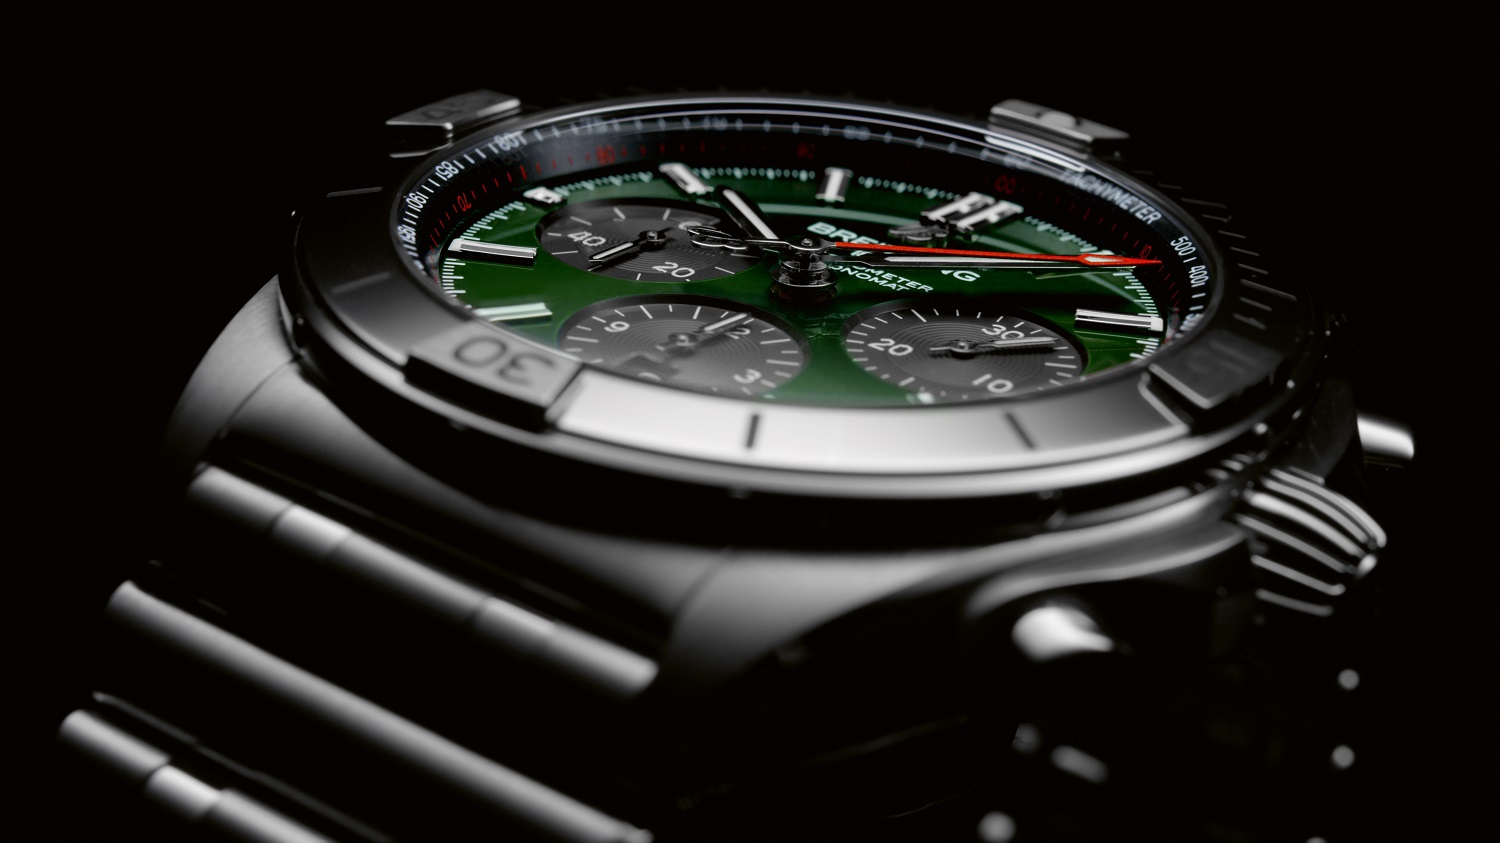 New Chronomat Bentley Watch Brings Modern Style To Retro Icon